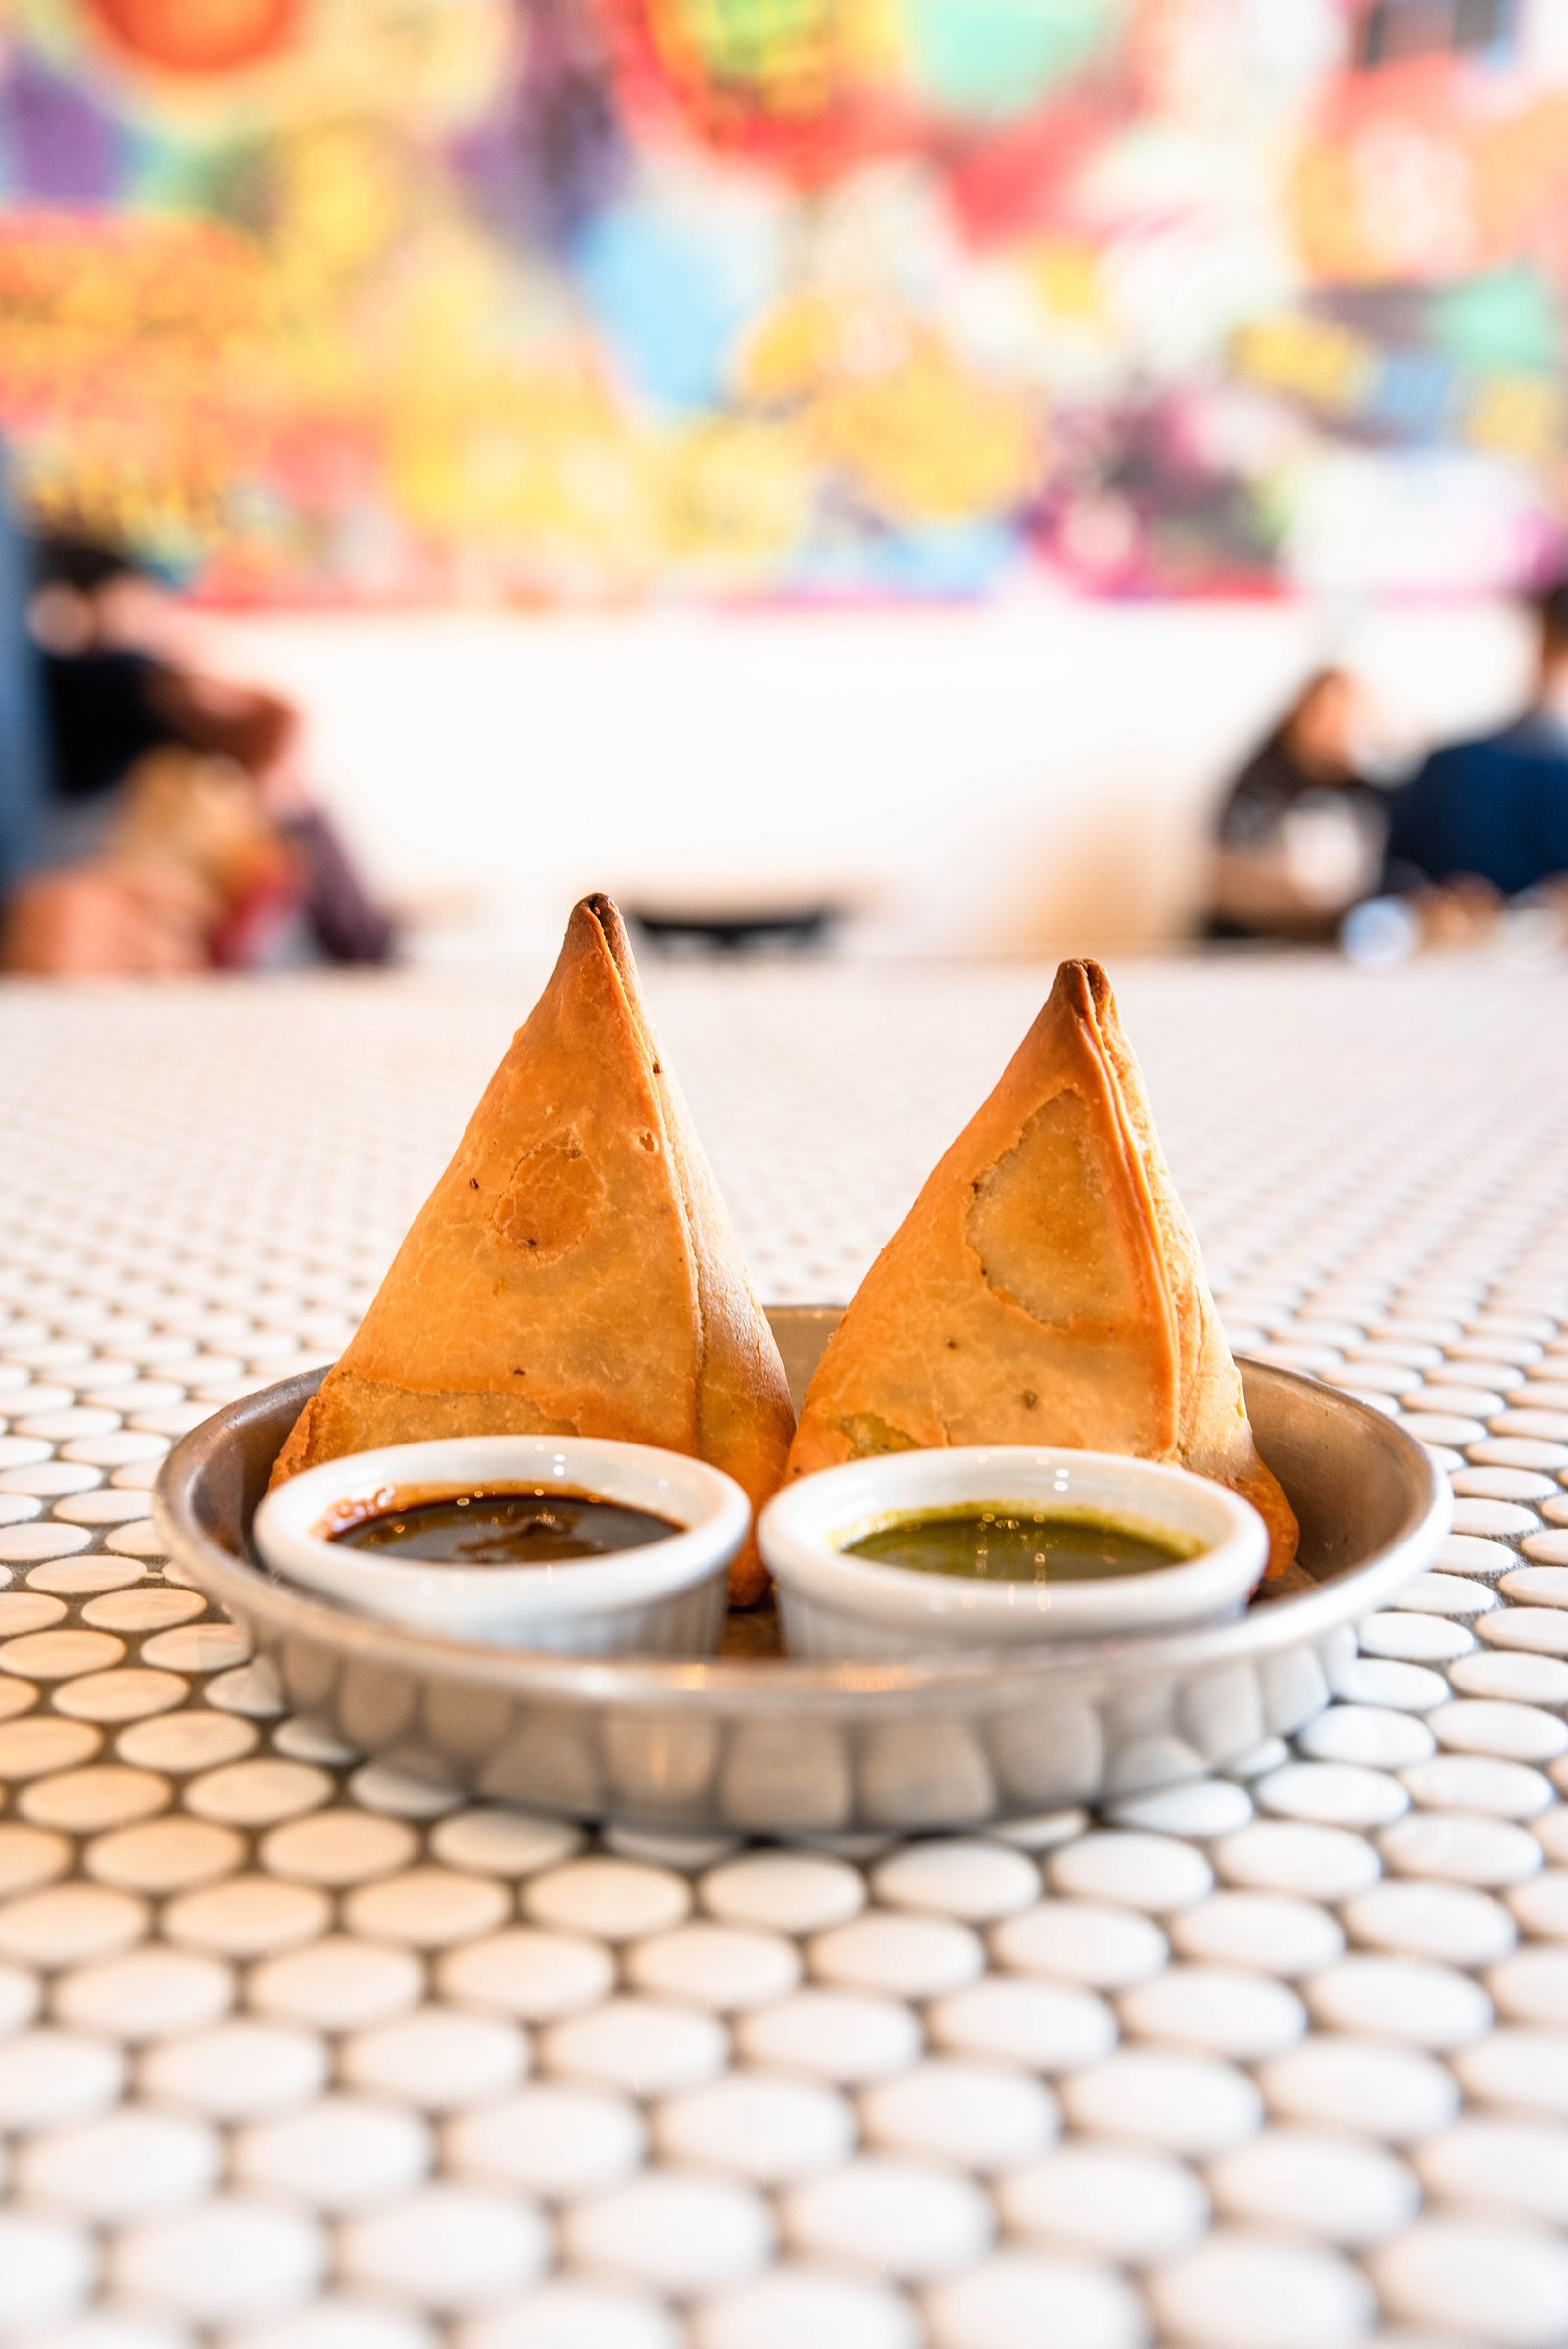 Curry Up Now Celebrates World Vegetarian Day With Free Samosas for Customers